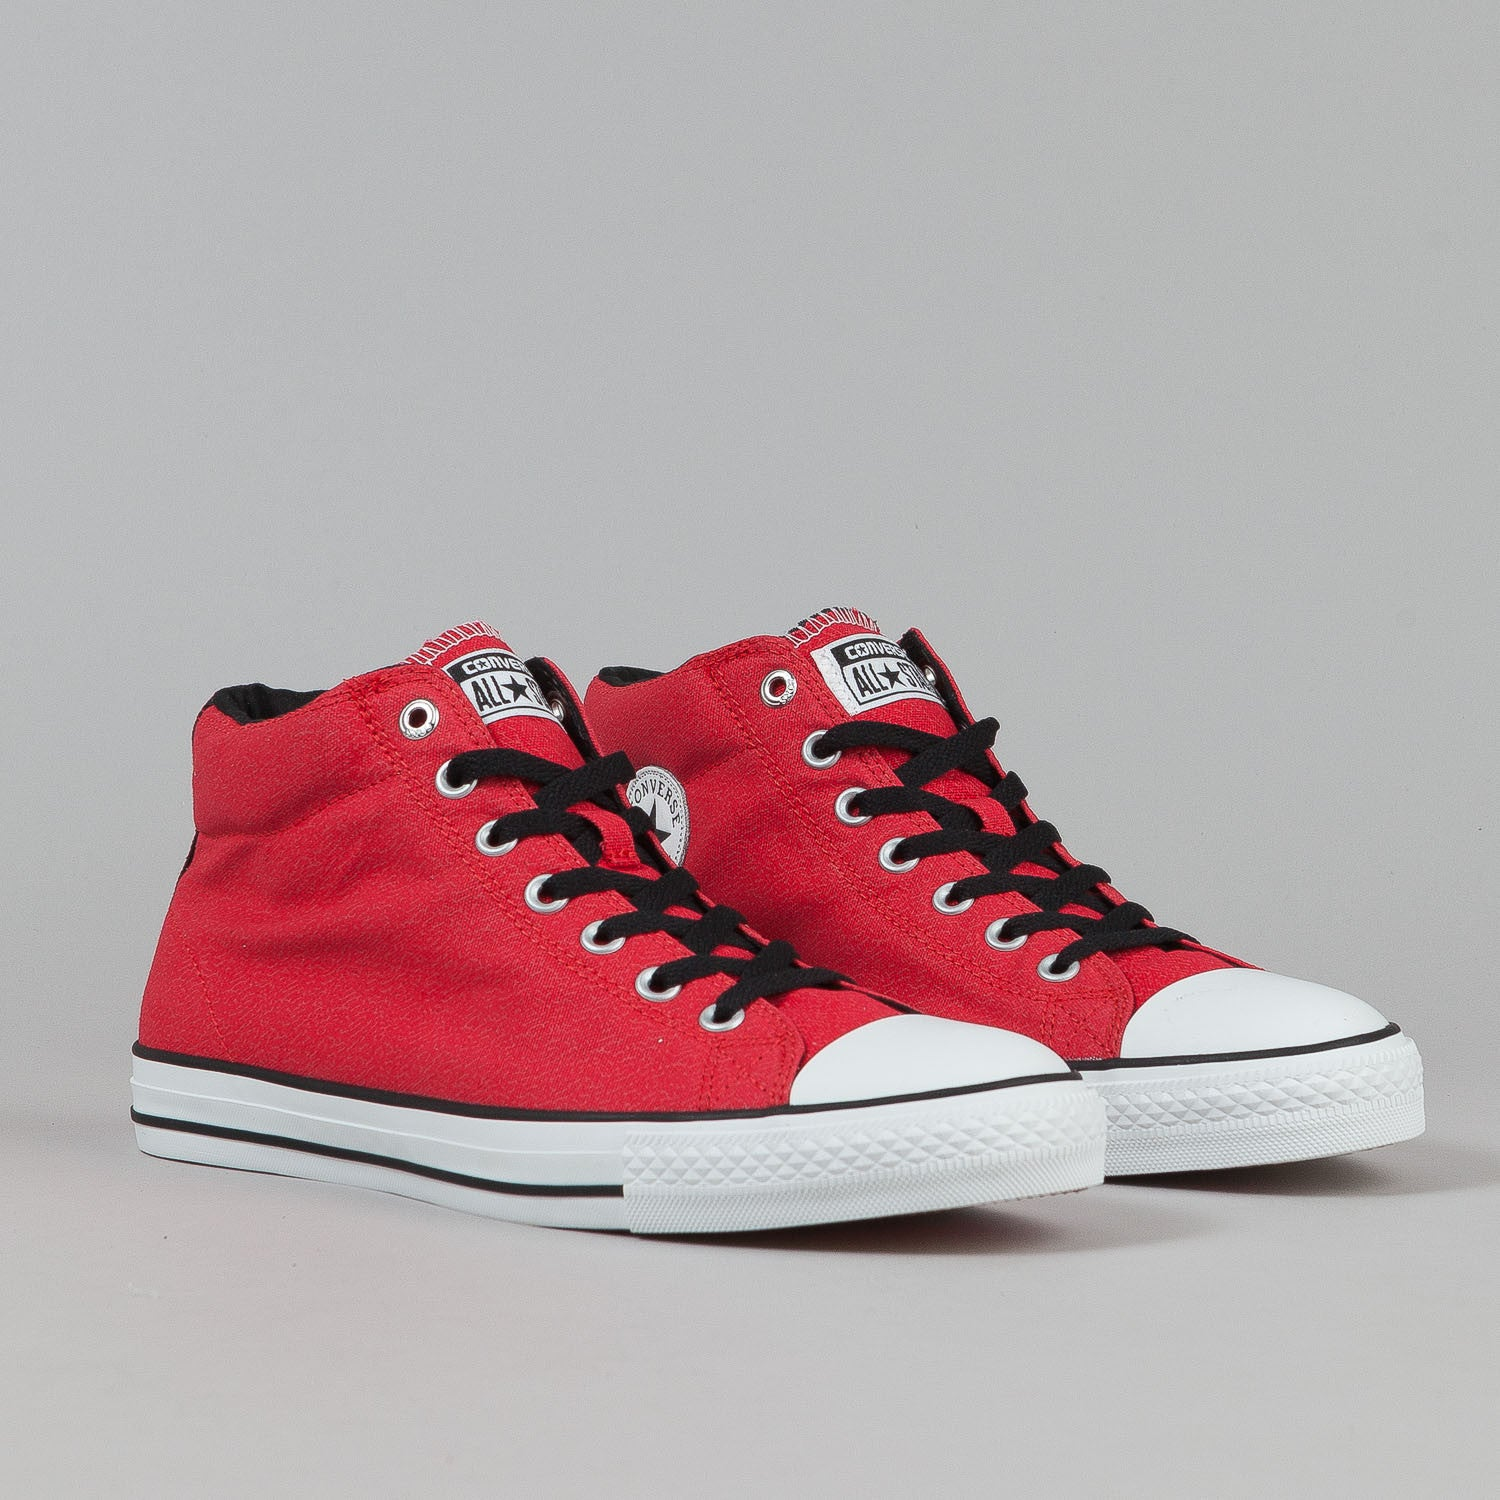 Converse X Santa Cruz CTS Mid Red / Black / White